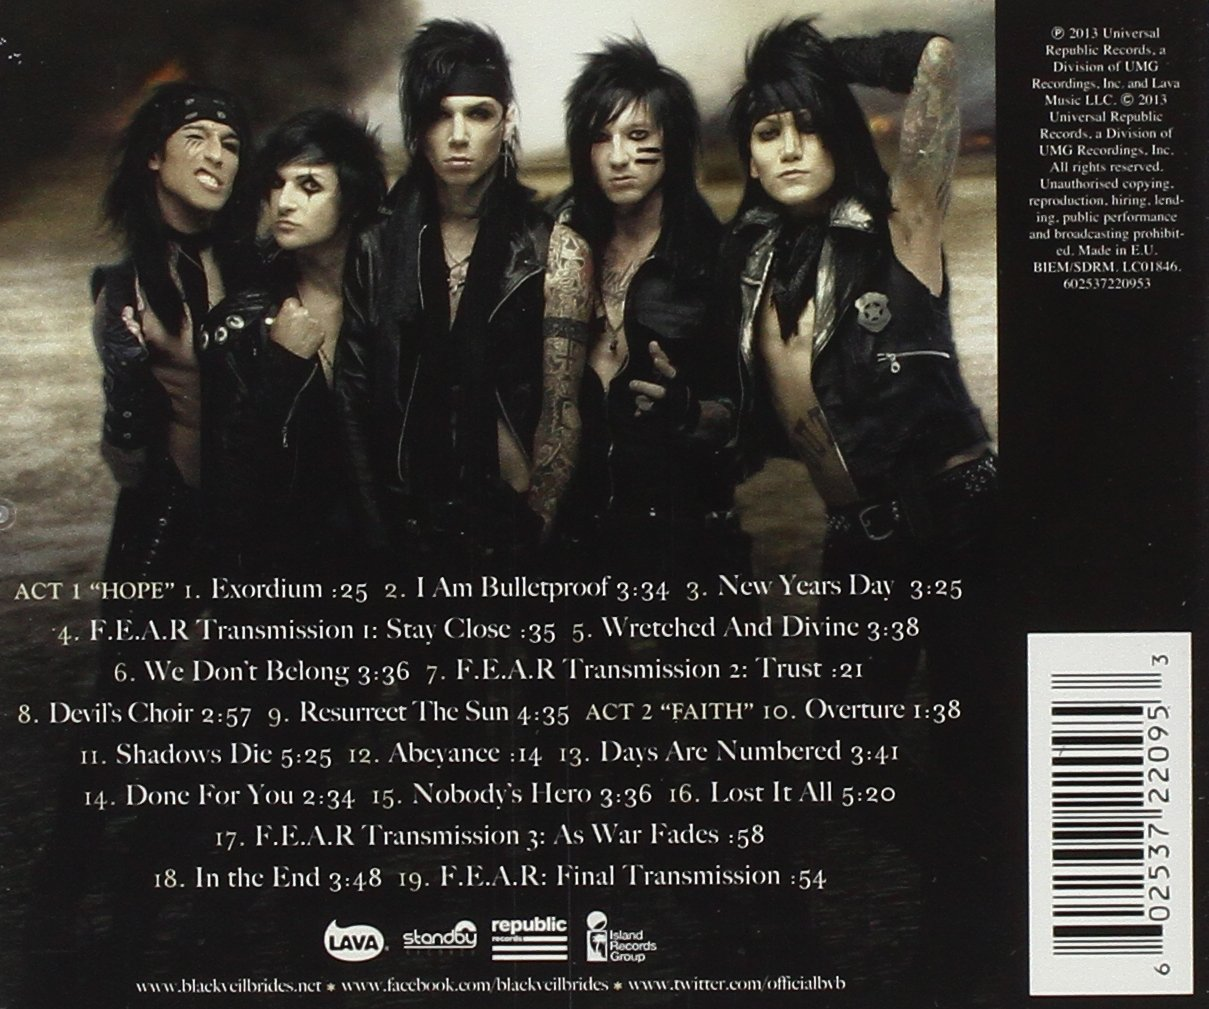 Black veil brides wretched and divine the story of the wild ones black veil brides wretched and divine the story of the wild ones amazon music m4hsunfo